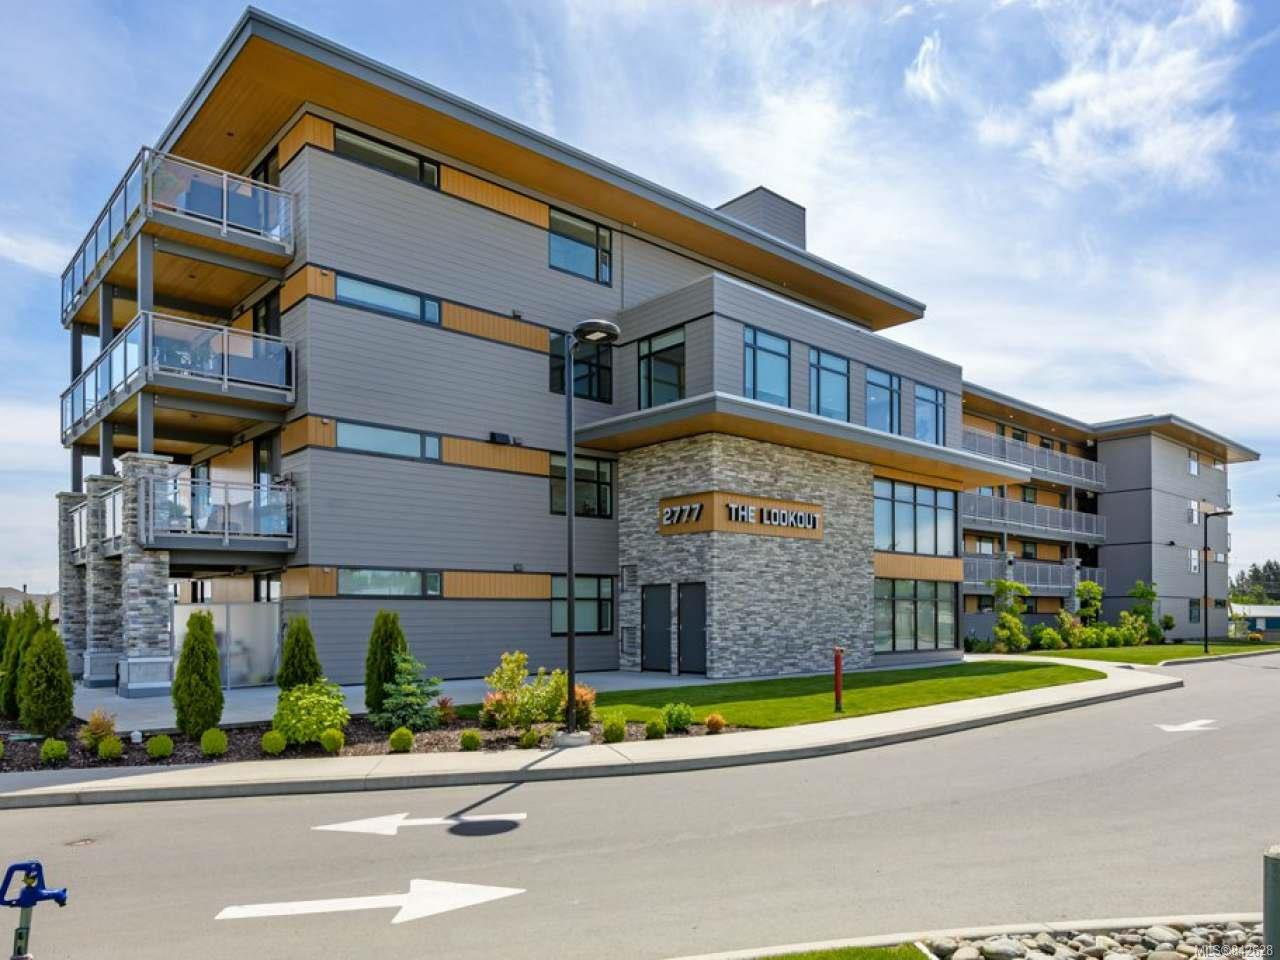 Photo 11: Photos: 101 2777 North Beach Dr in CAMPBELL RIVER: CR Campbell River North Condo Apartment for sale (Campbell River)  : MLS®# 842628